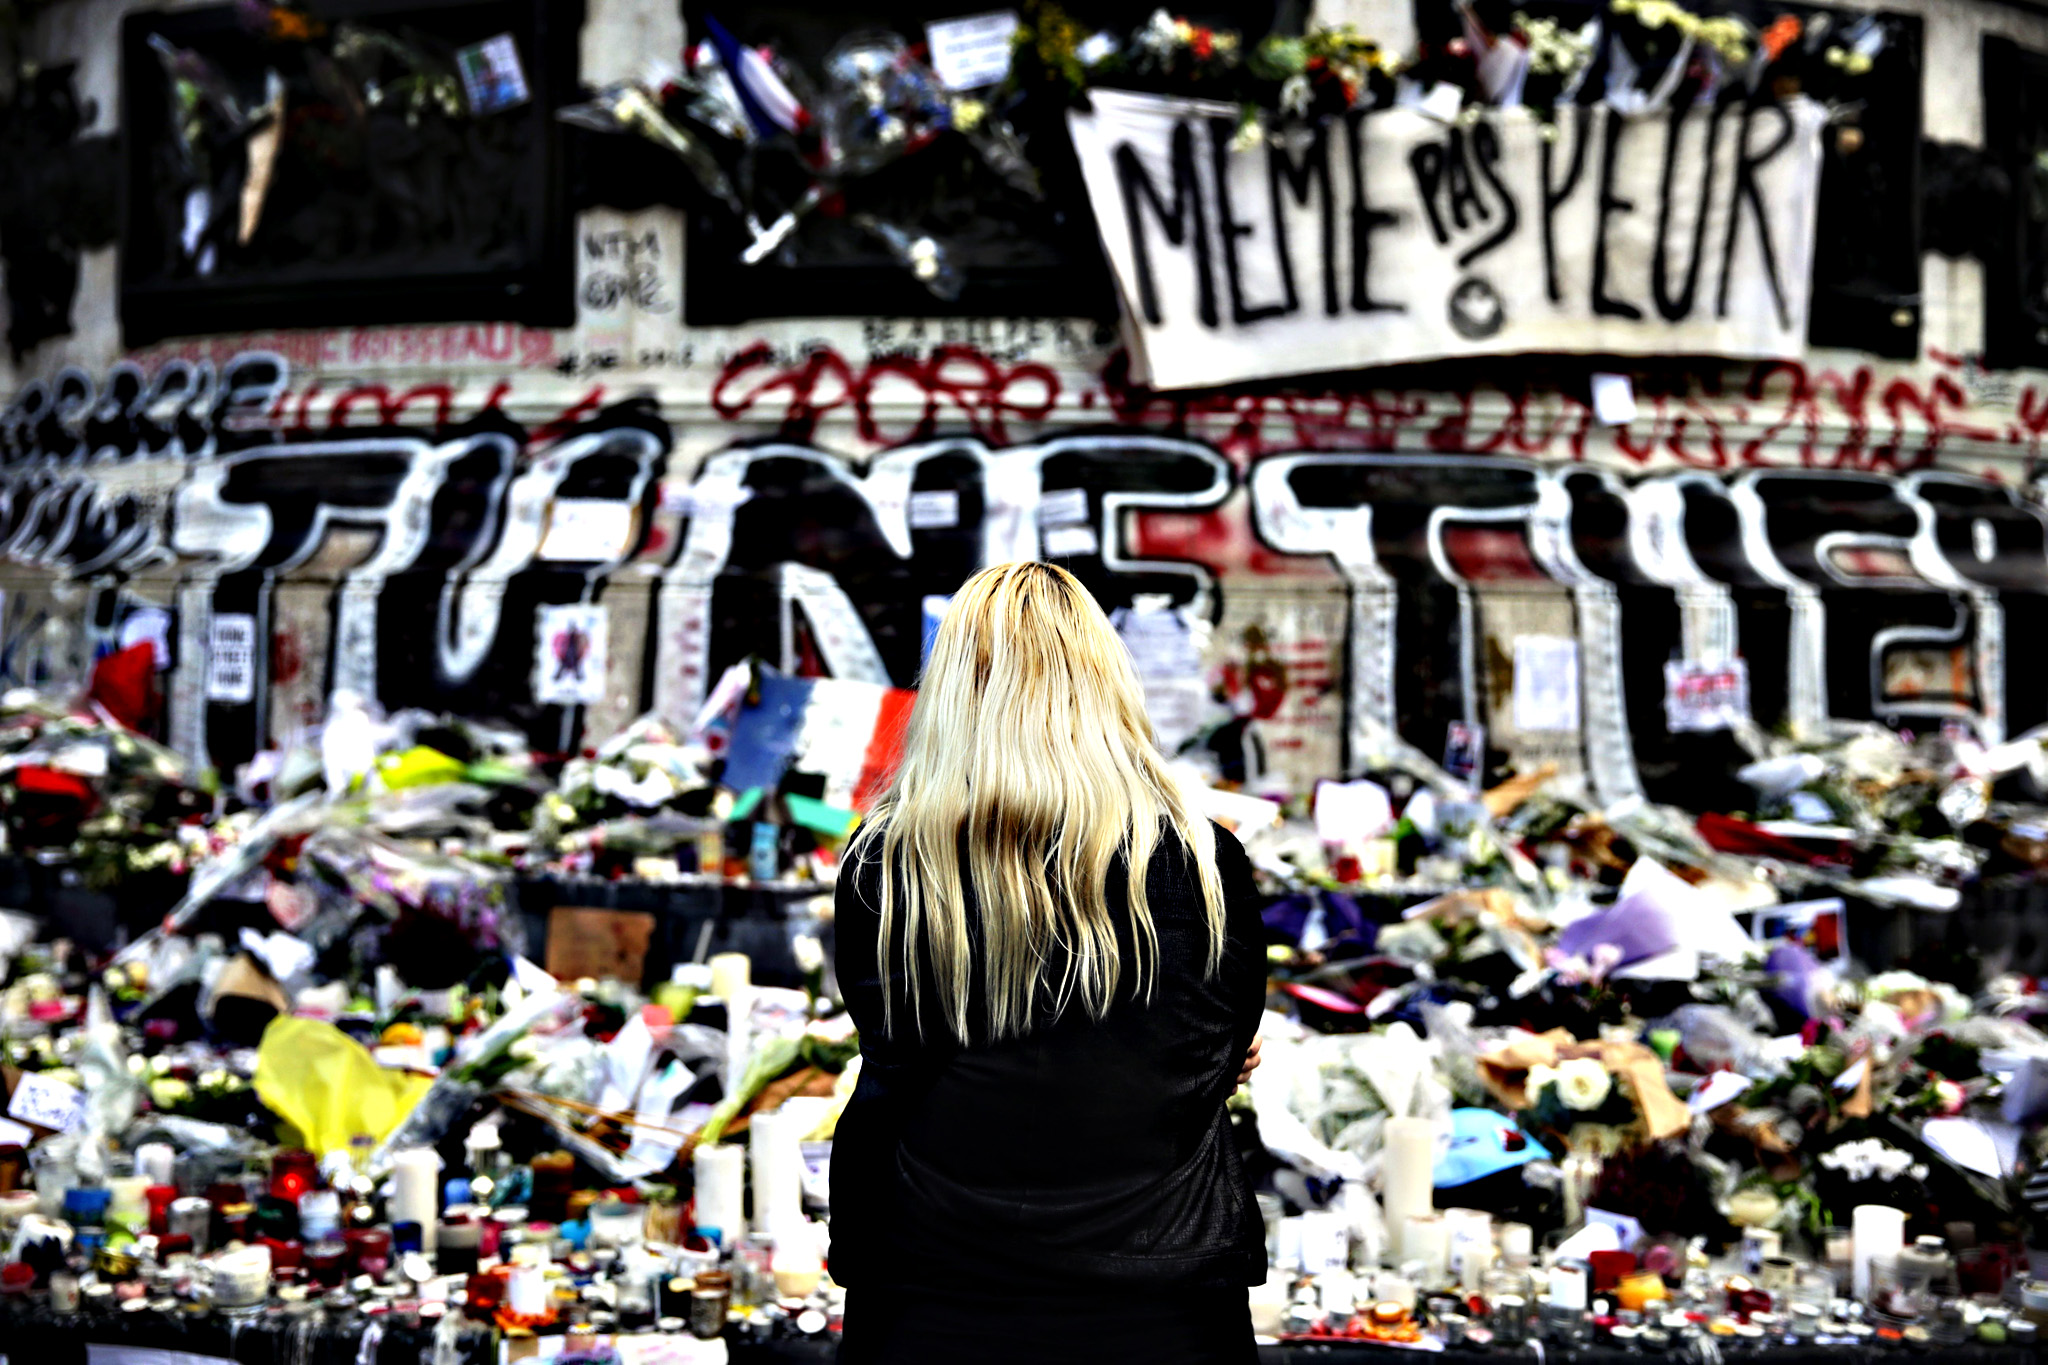 A woman stands in front of a makeshift memorial made up with flowers, candles and messages, on November 17, 2015, at the Place de la Republique square in Paris, in tribute to victims of the attacks claimed by Islamic State which killed at least 129 people and left more than 350 injured on November 13 in Paris.